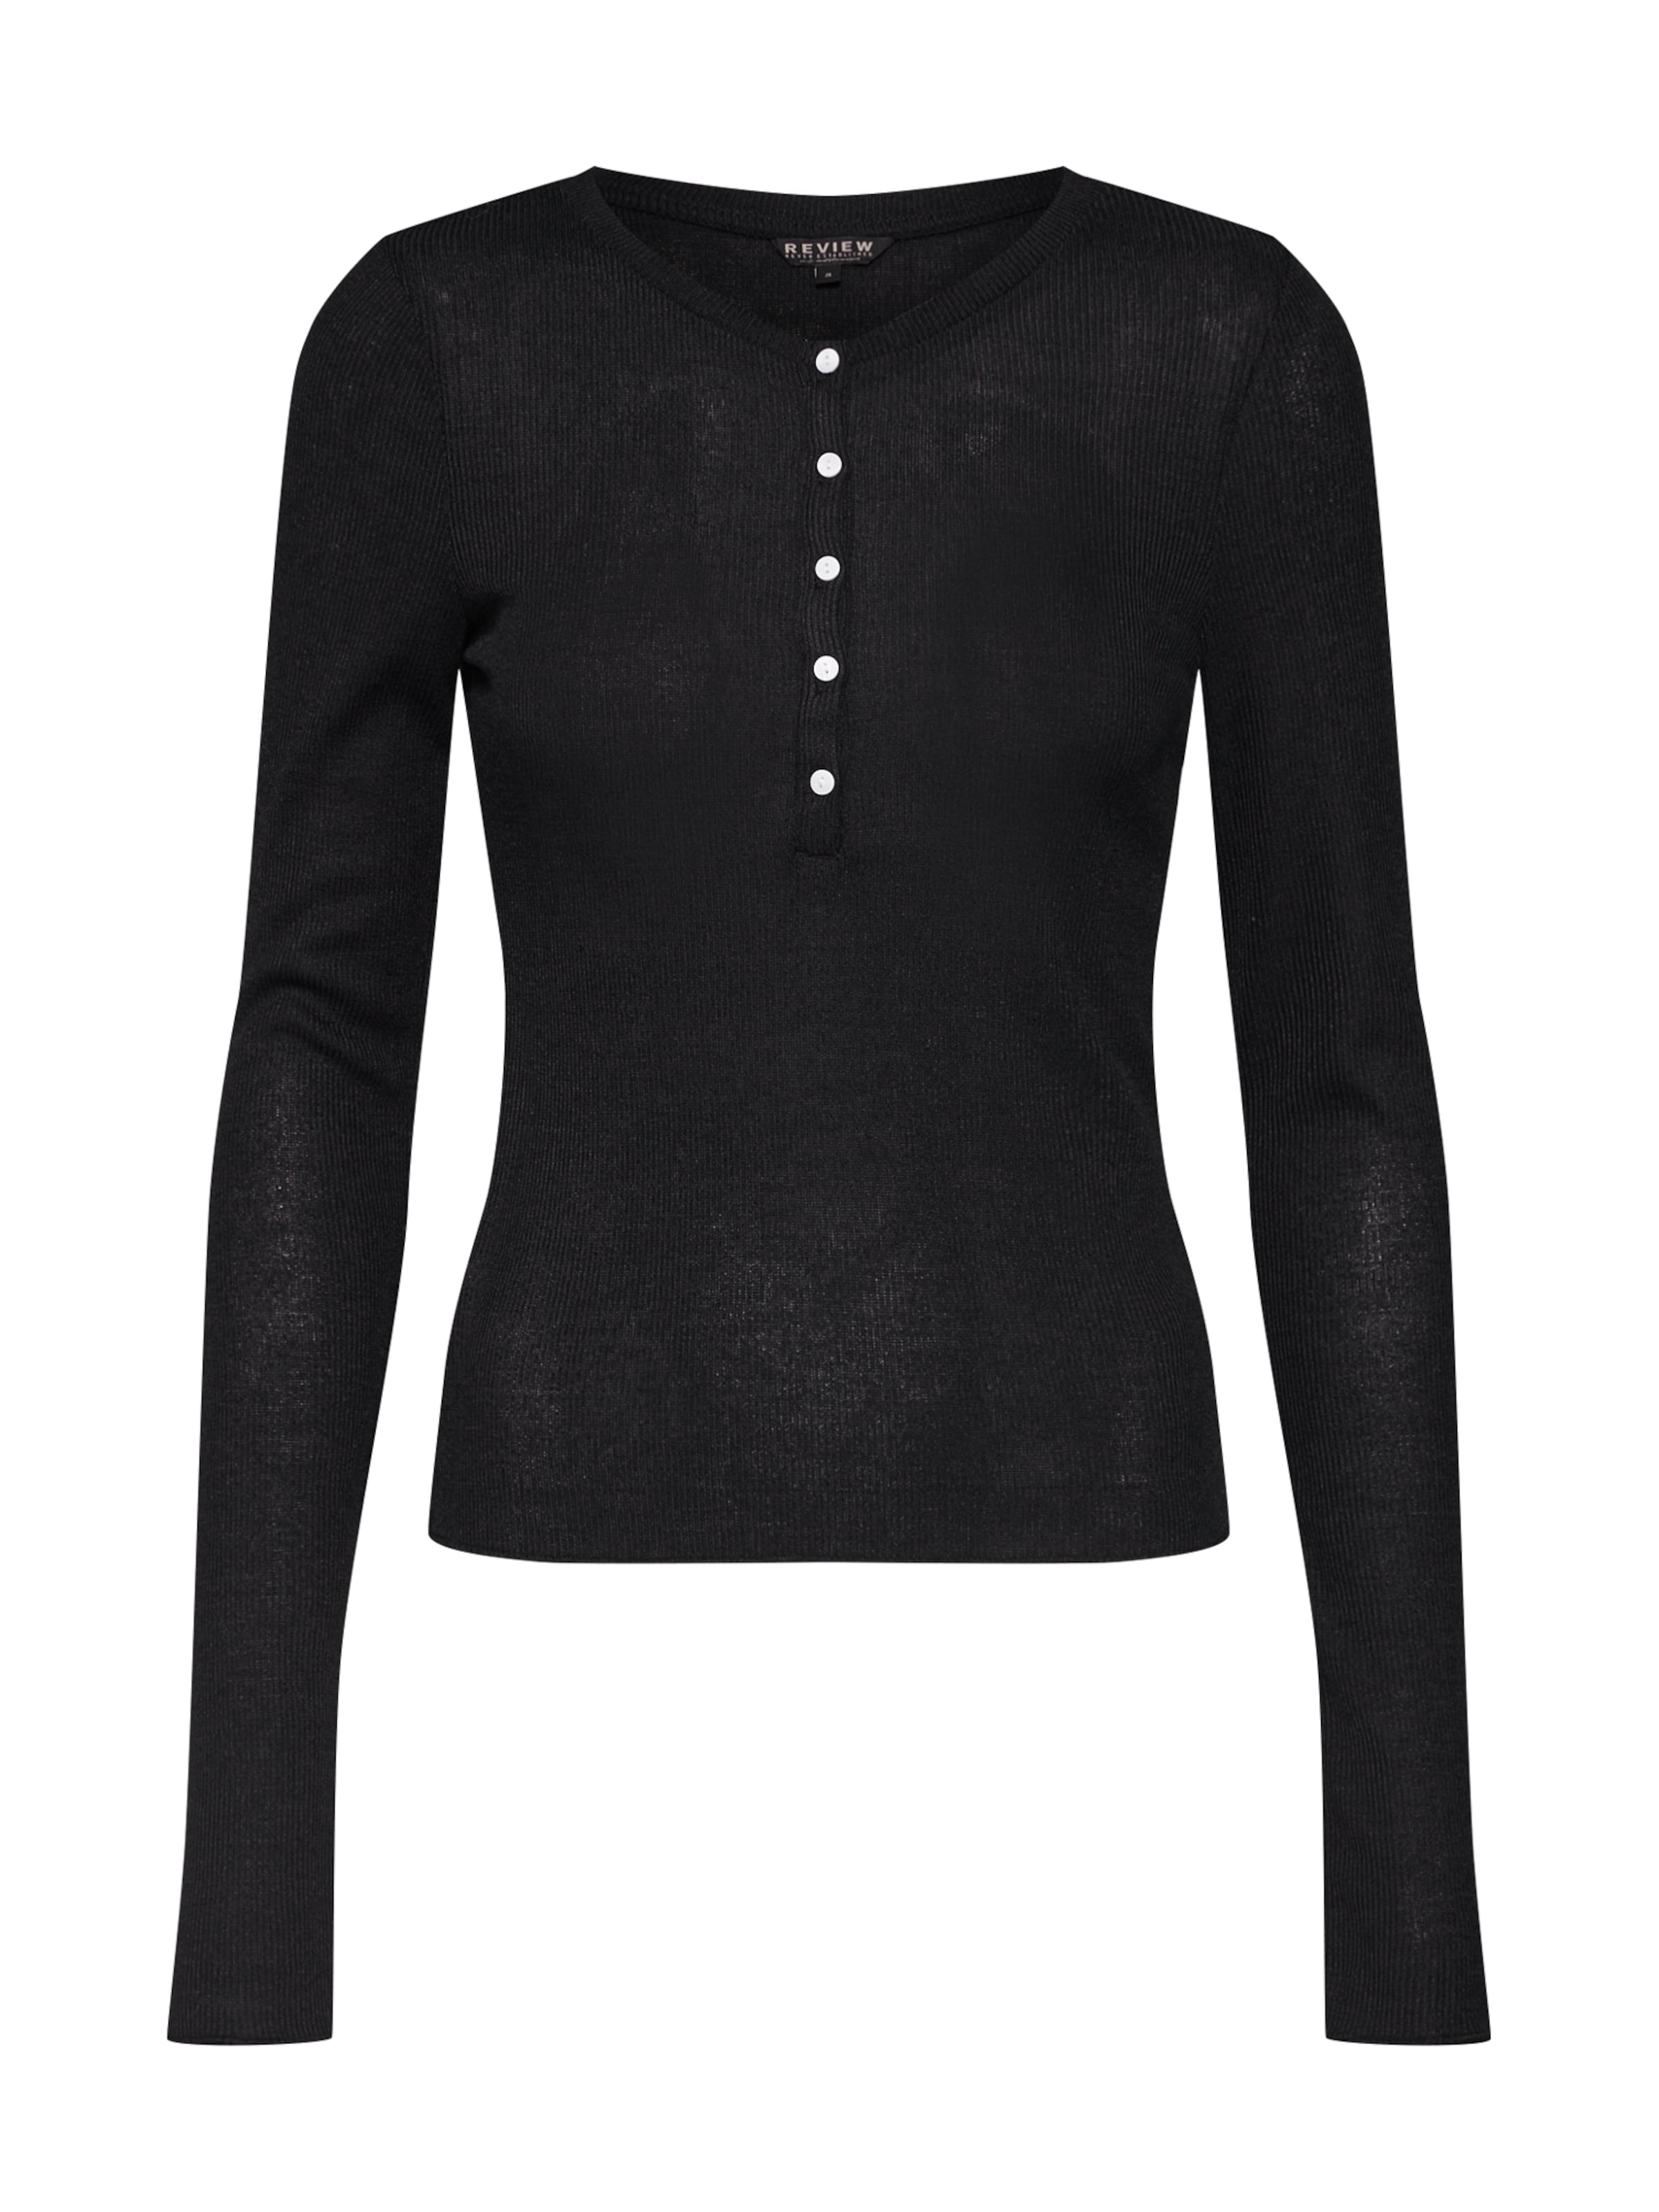 In 'henley Review Rib' Schwarz Shirt KJFcl1